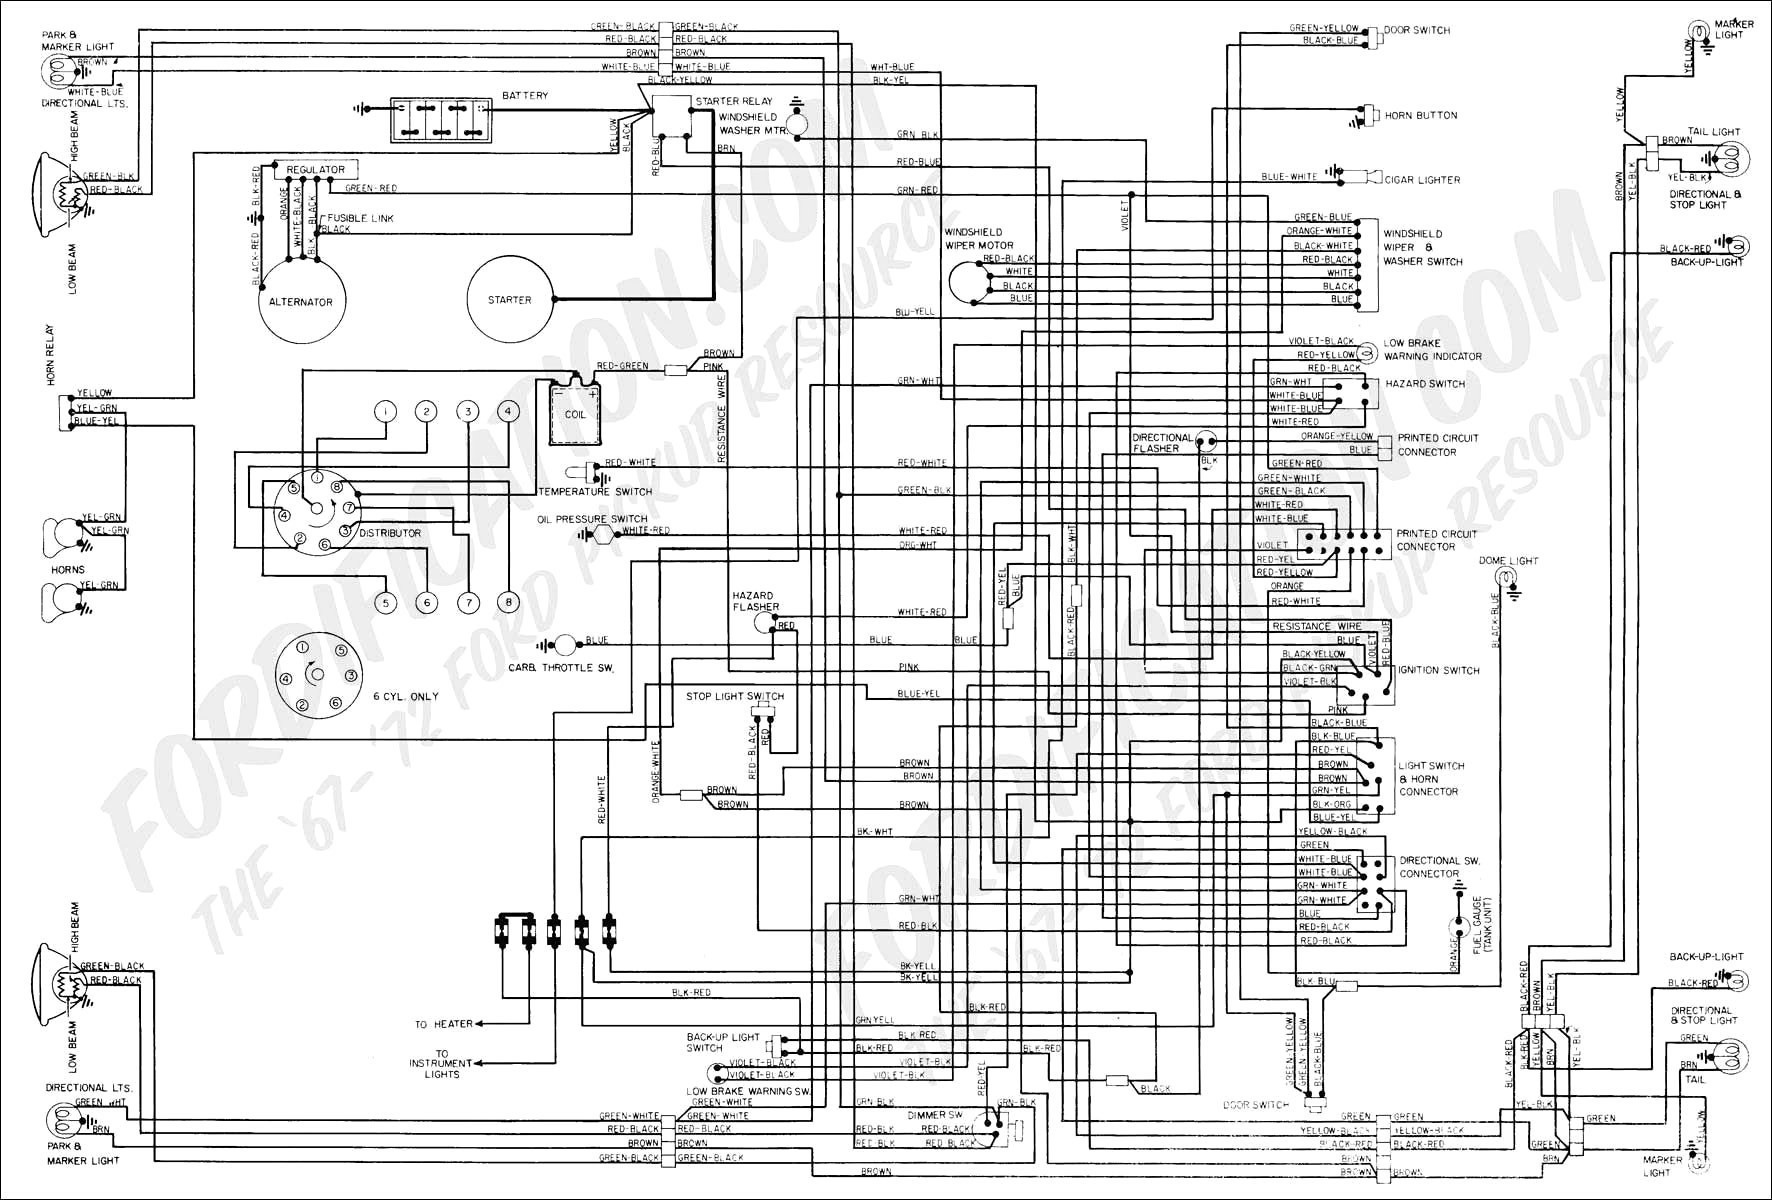 2008 F350 Tail Light Wiring Diagram 2001 ford F350 Wiring Diagram Wiring Diagram Schematic Of 2008 F350 Tail Light Wiring Diagram